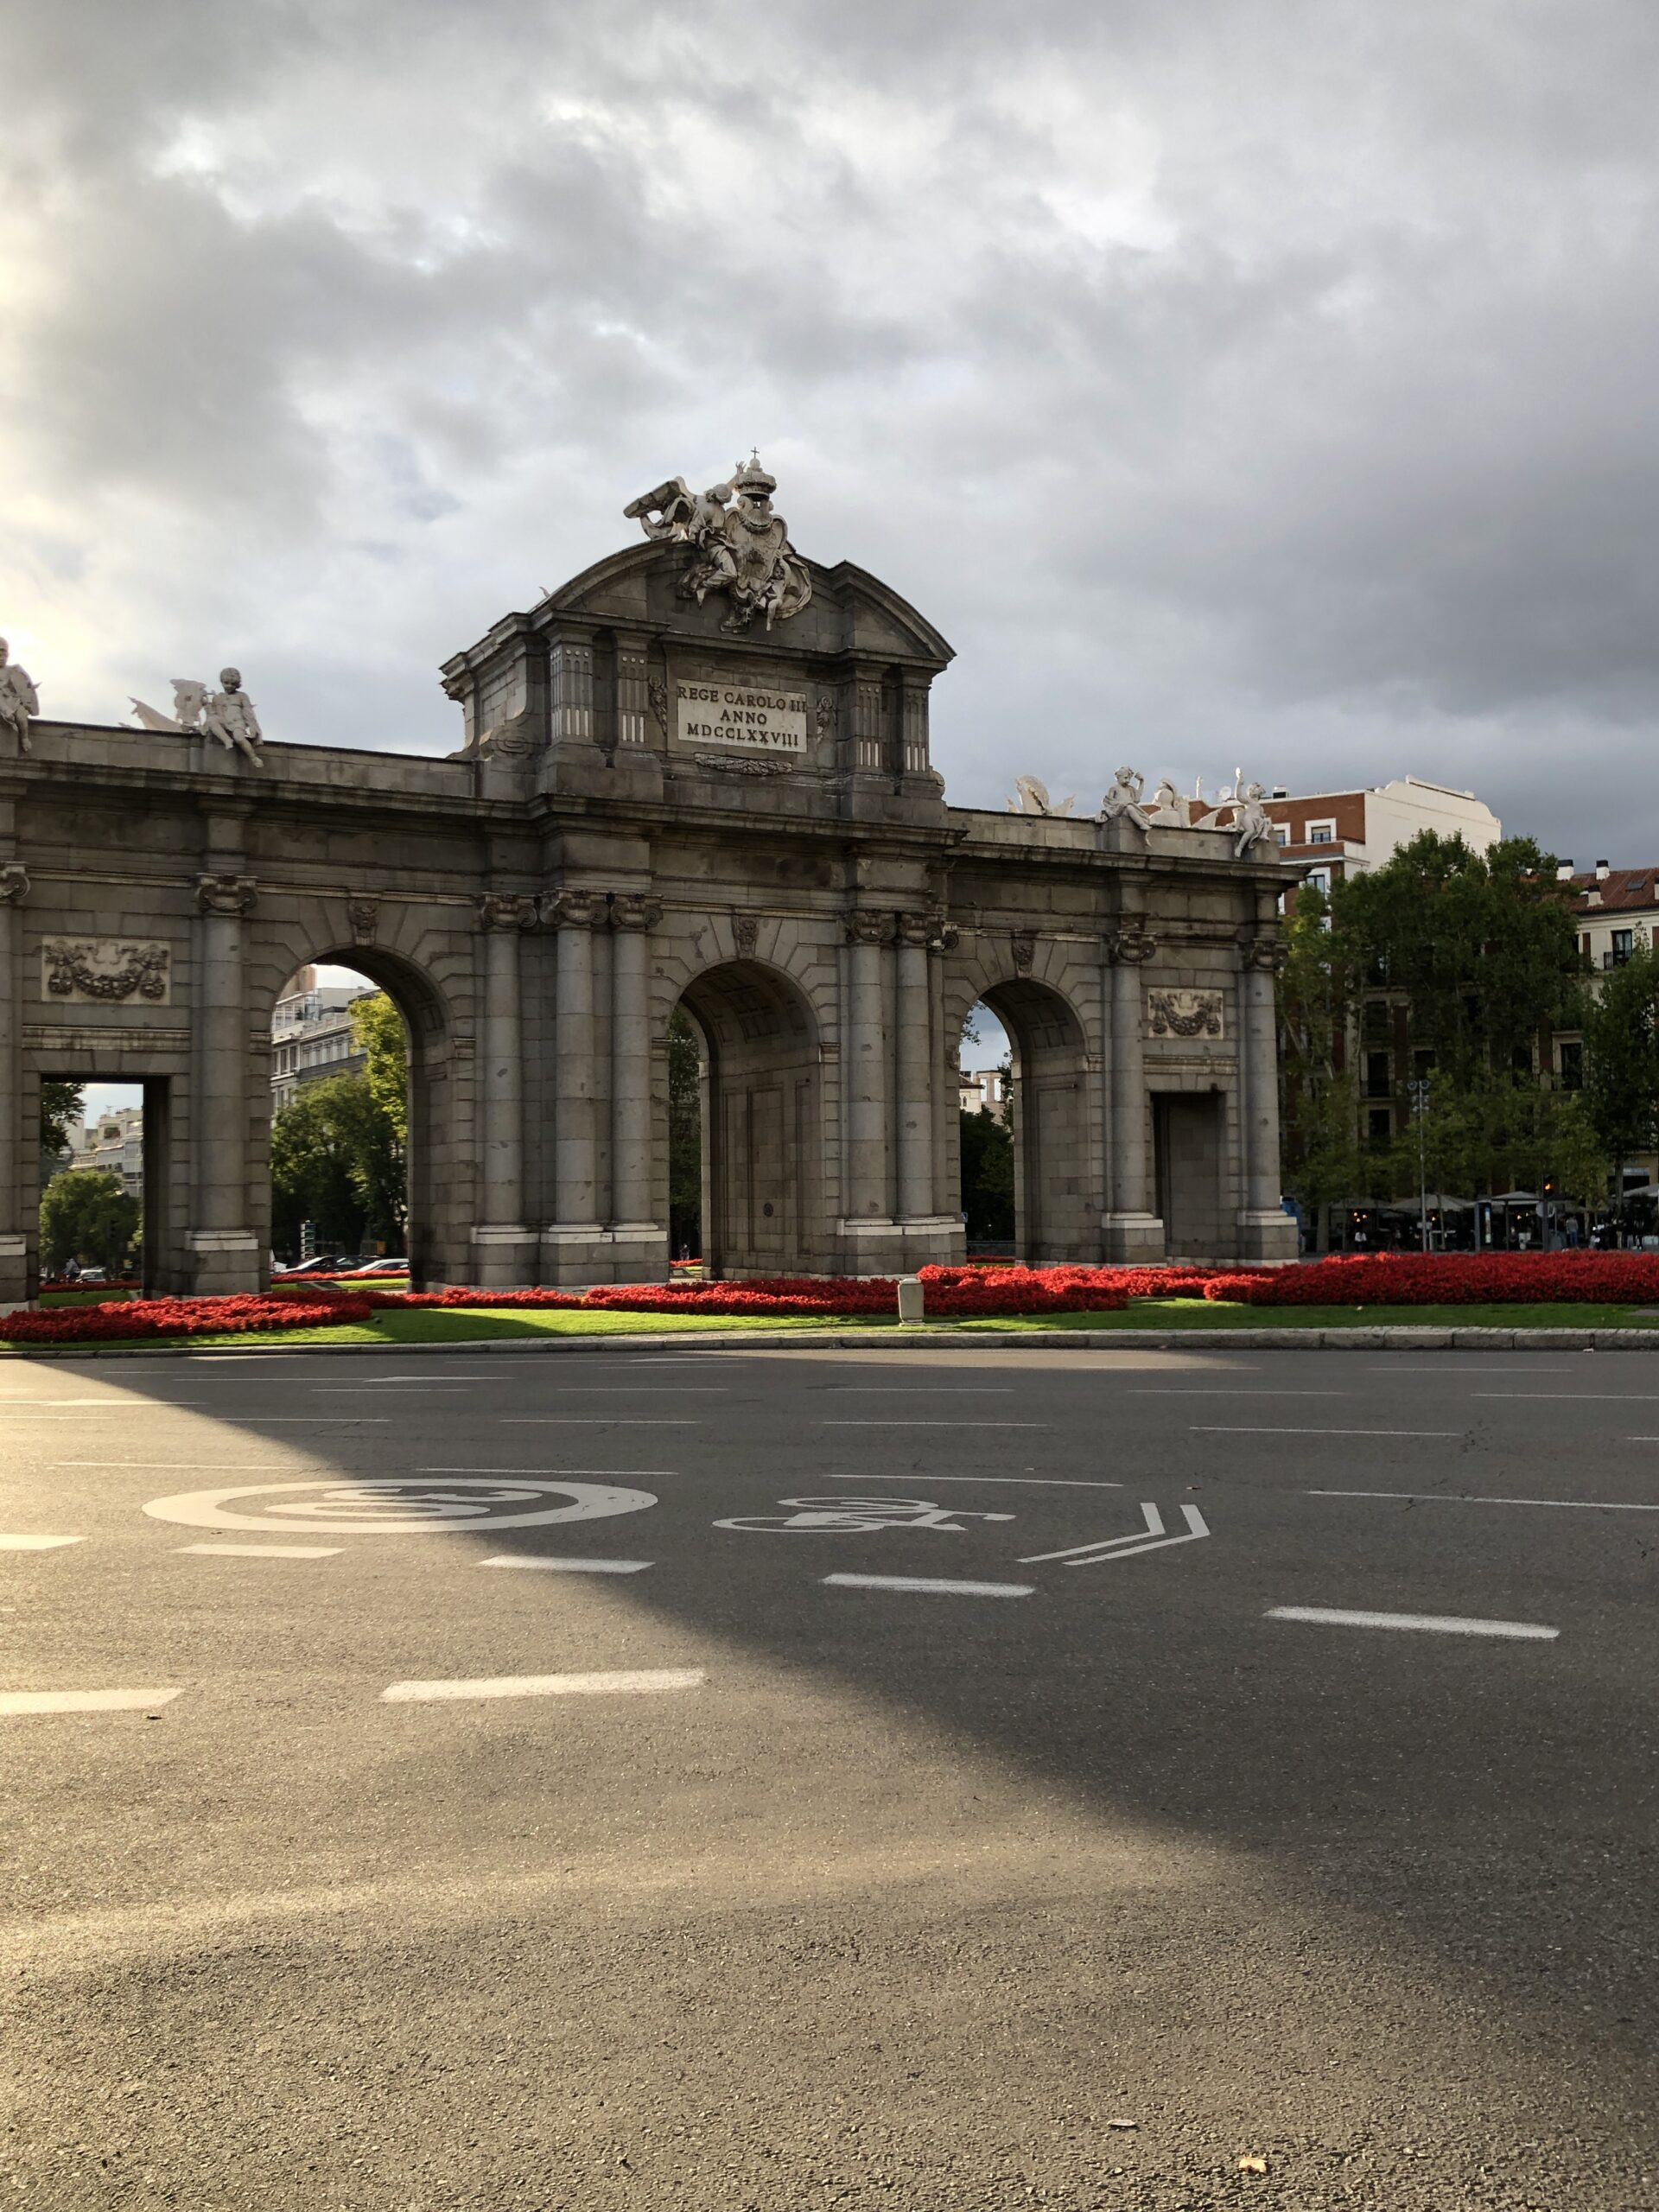 The Puerta de Alcalá in Madrid in the sunlight.